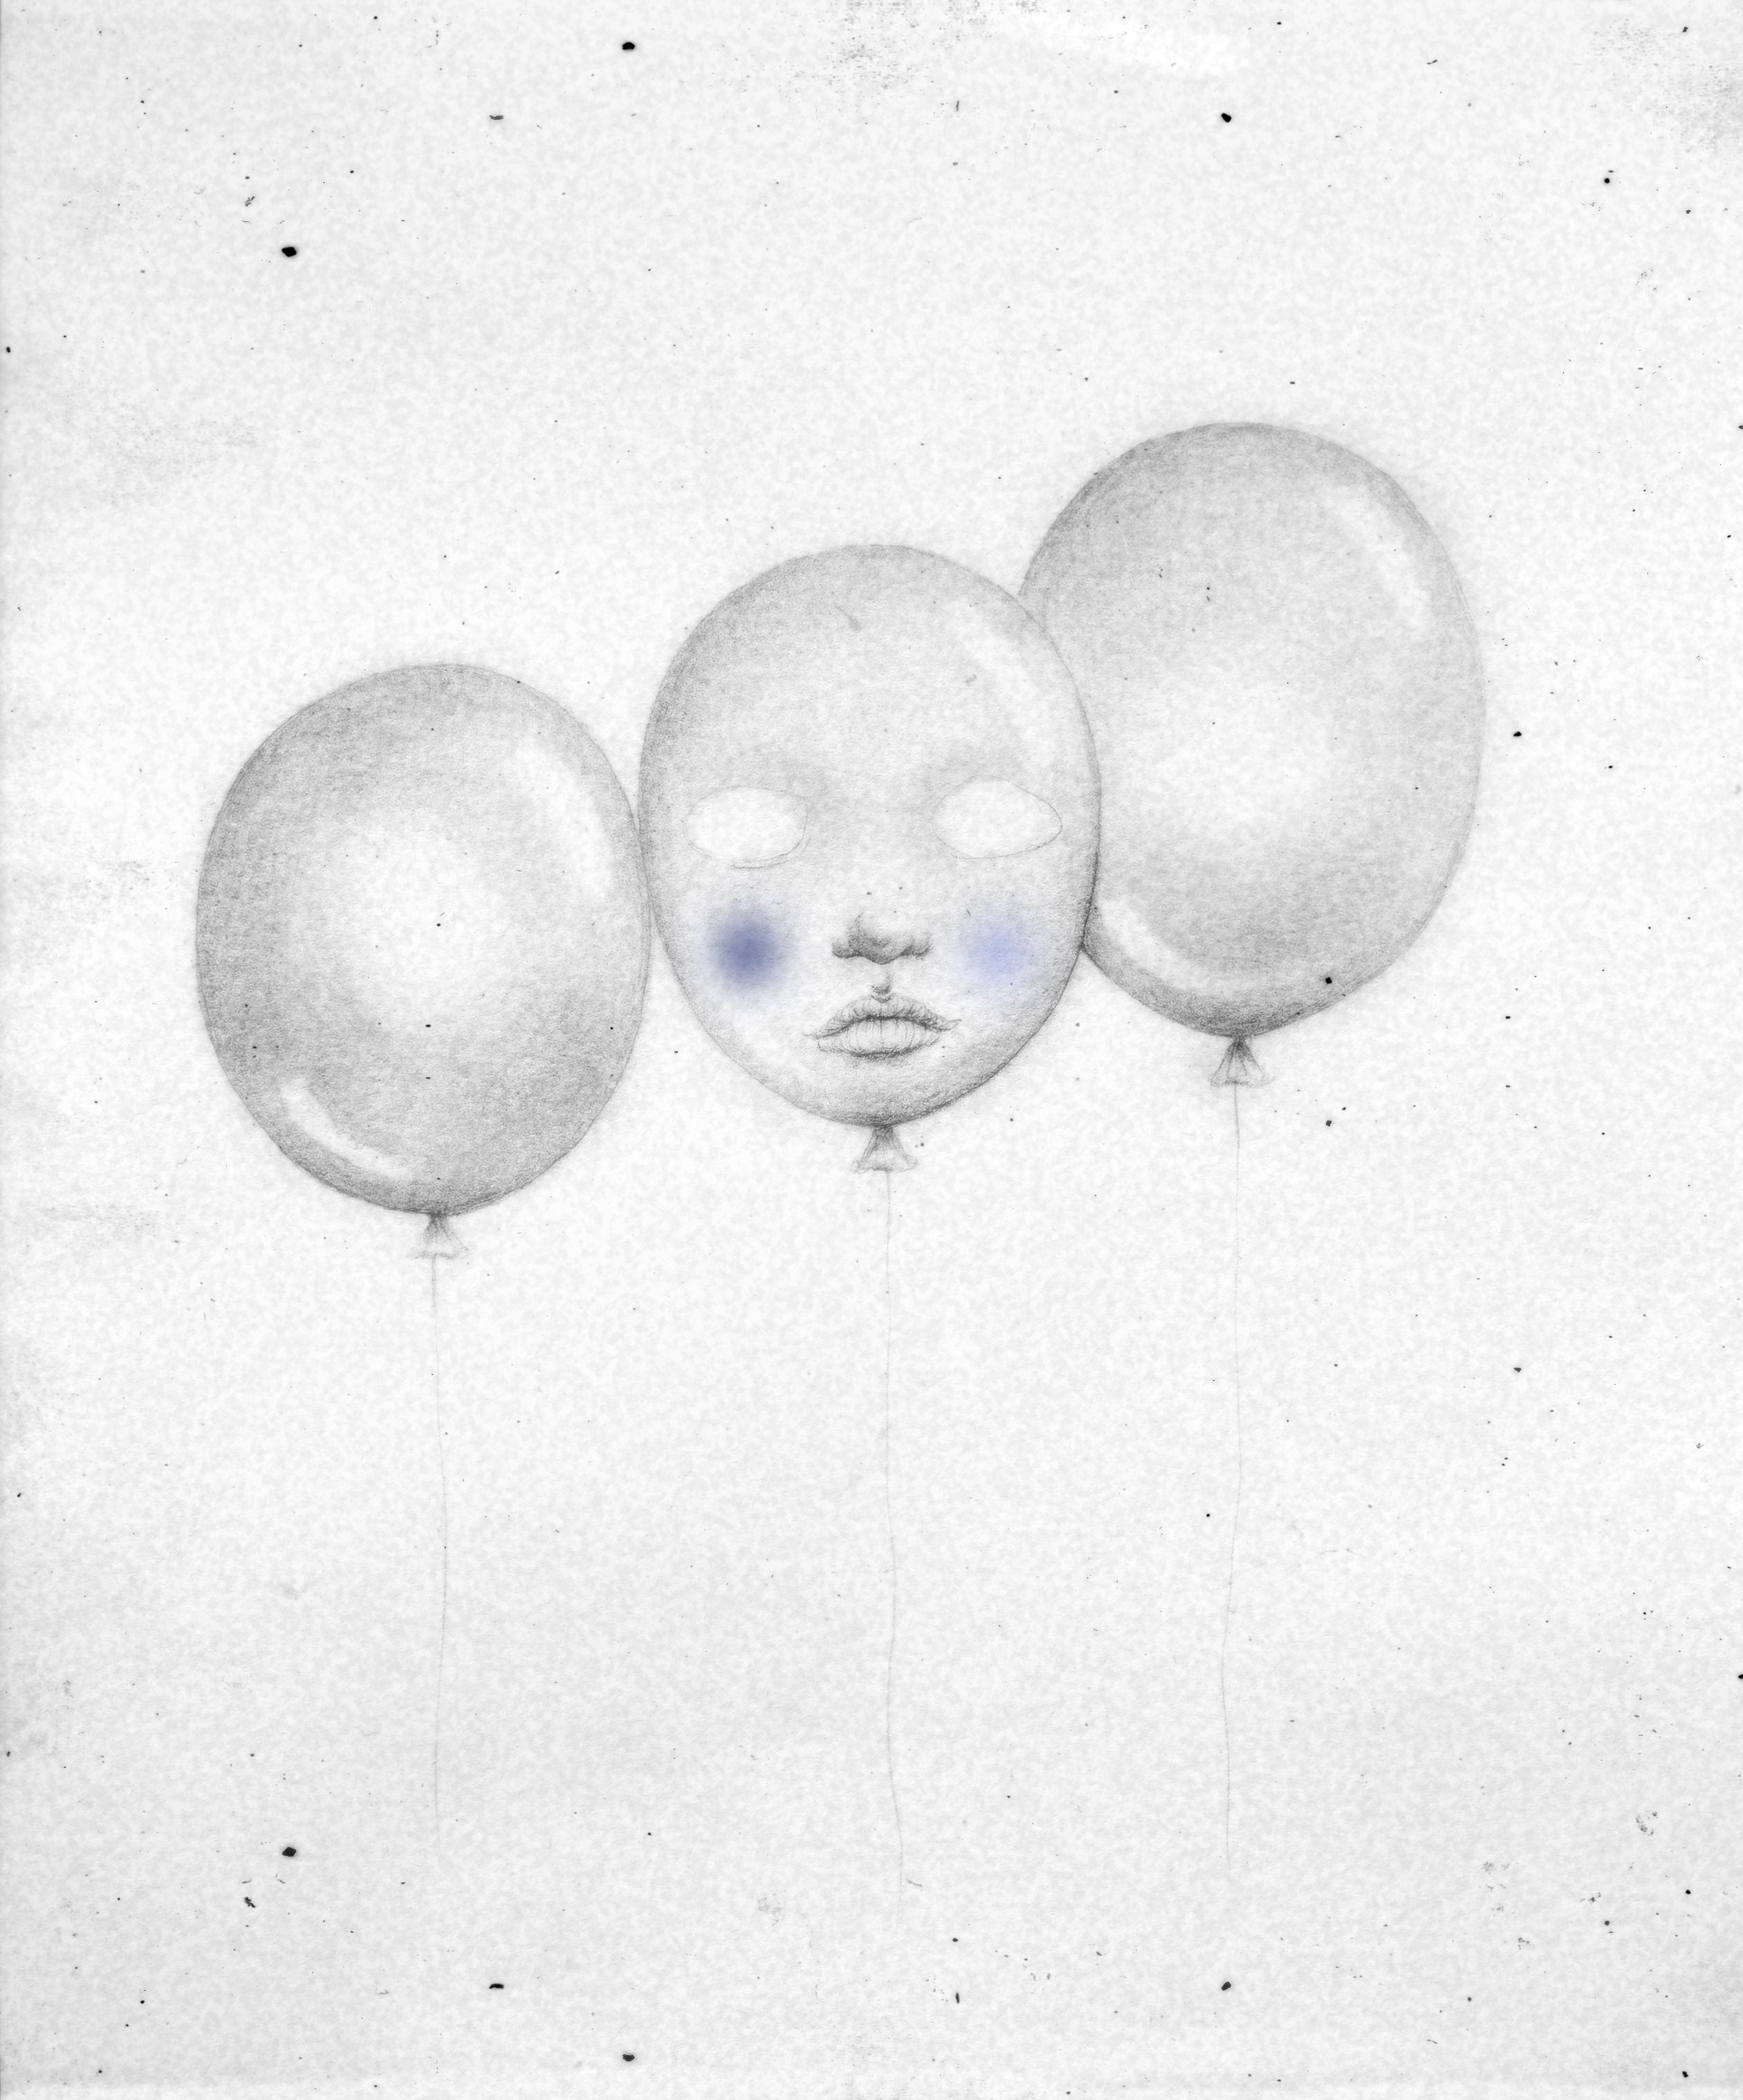 Balloon Face Black And White Illustration Pencil Drawing